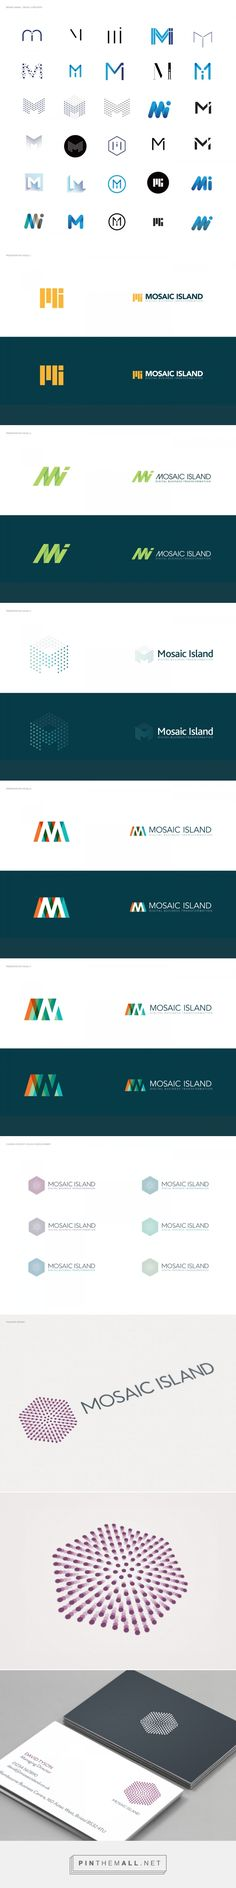 Mosaic Island - Branding and communications on Behance